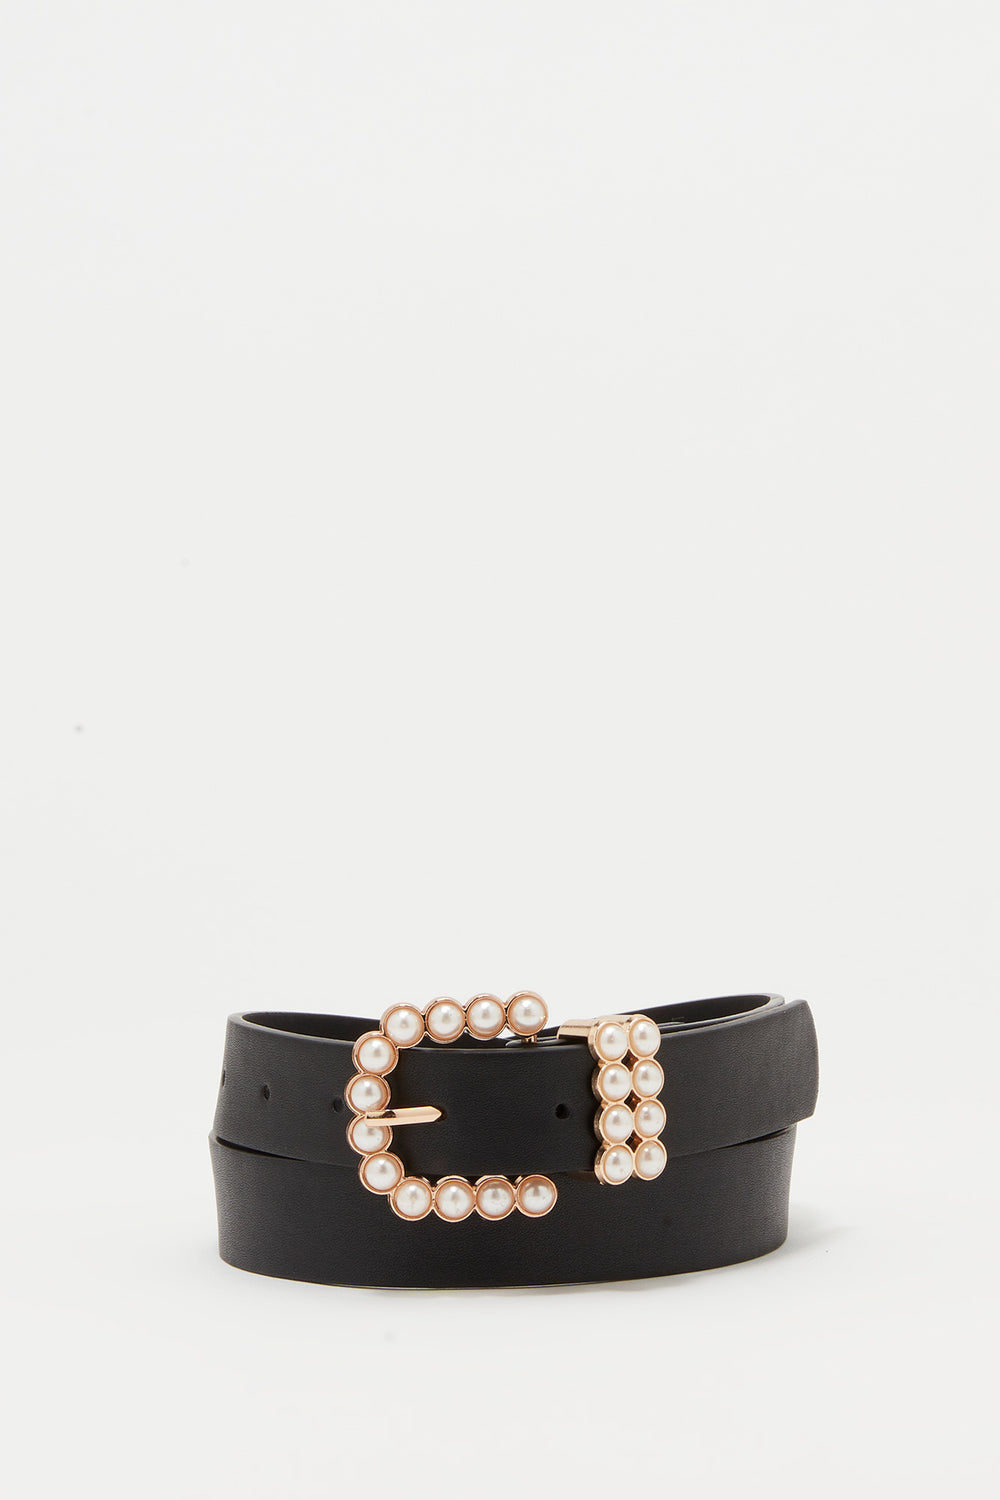 Pearl Buckle Belt Black